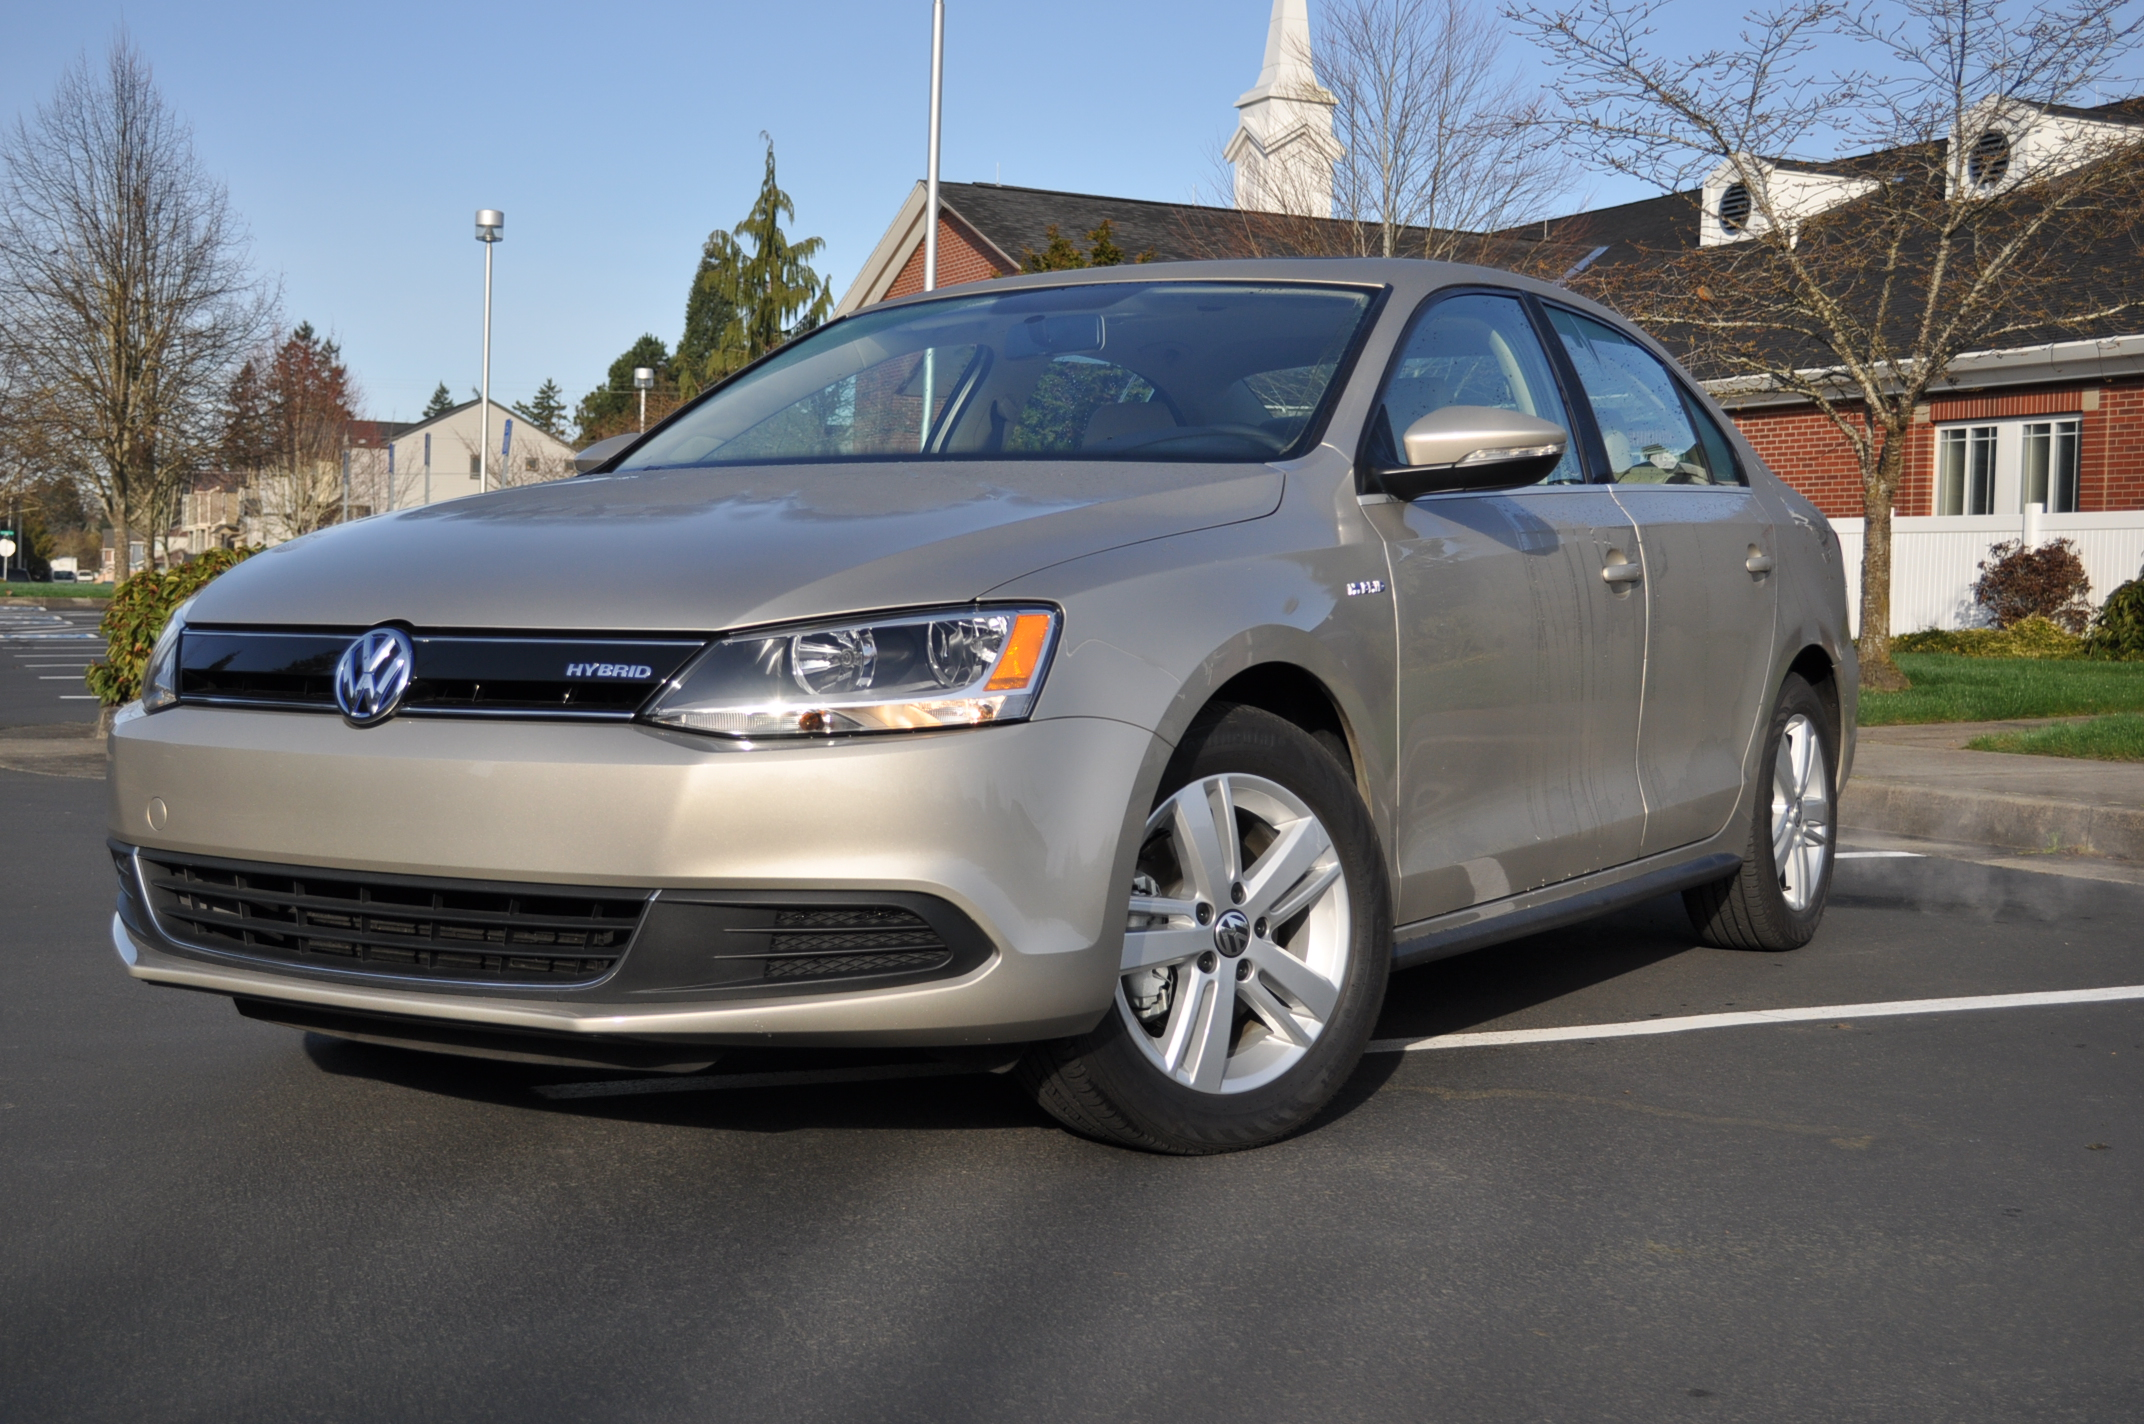 2013 volkswagen jetta hybrid quick gas mileage test. Black Bedroom Furniture Sets. Home Design Ideas